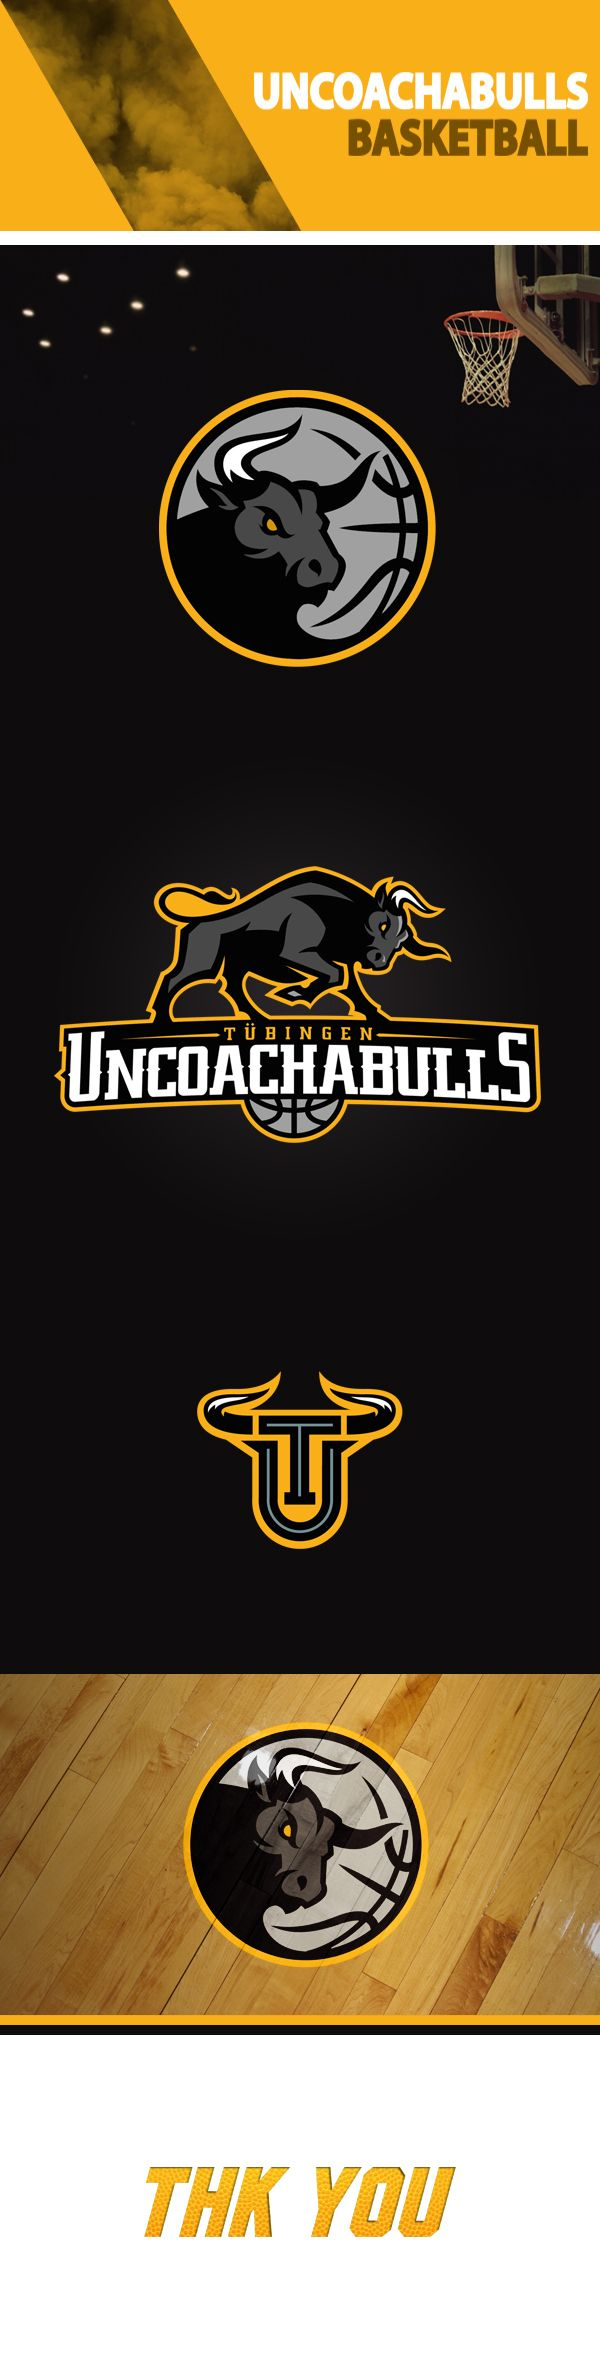 UNCOACHABULLS by Aurelien Mahaut, via Behance